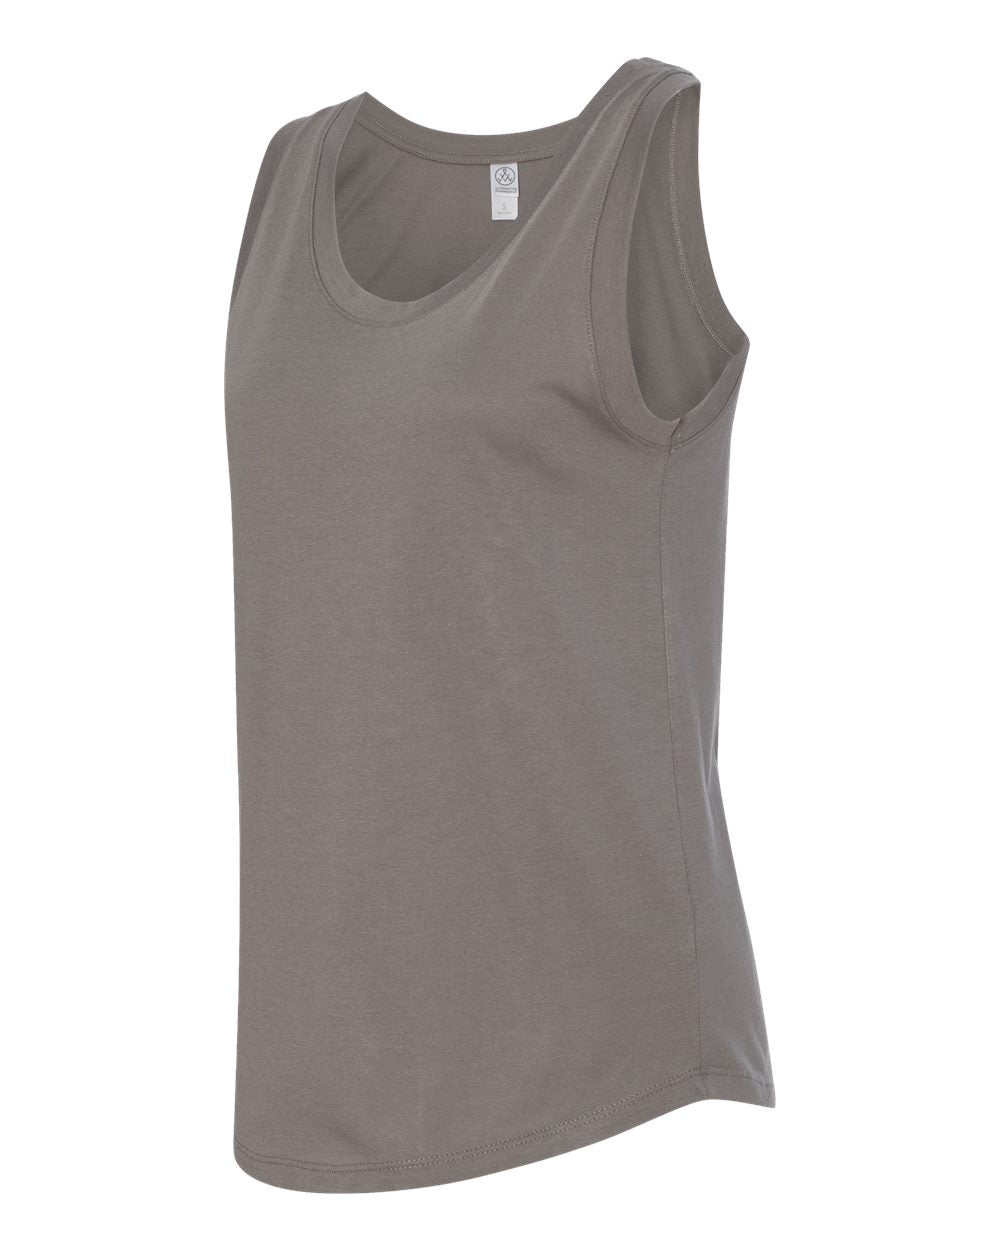 Blair Basic Muscle Tank- Nickel - Shirts - The Valley Boutique - Canada Online Shopping